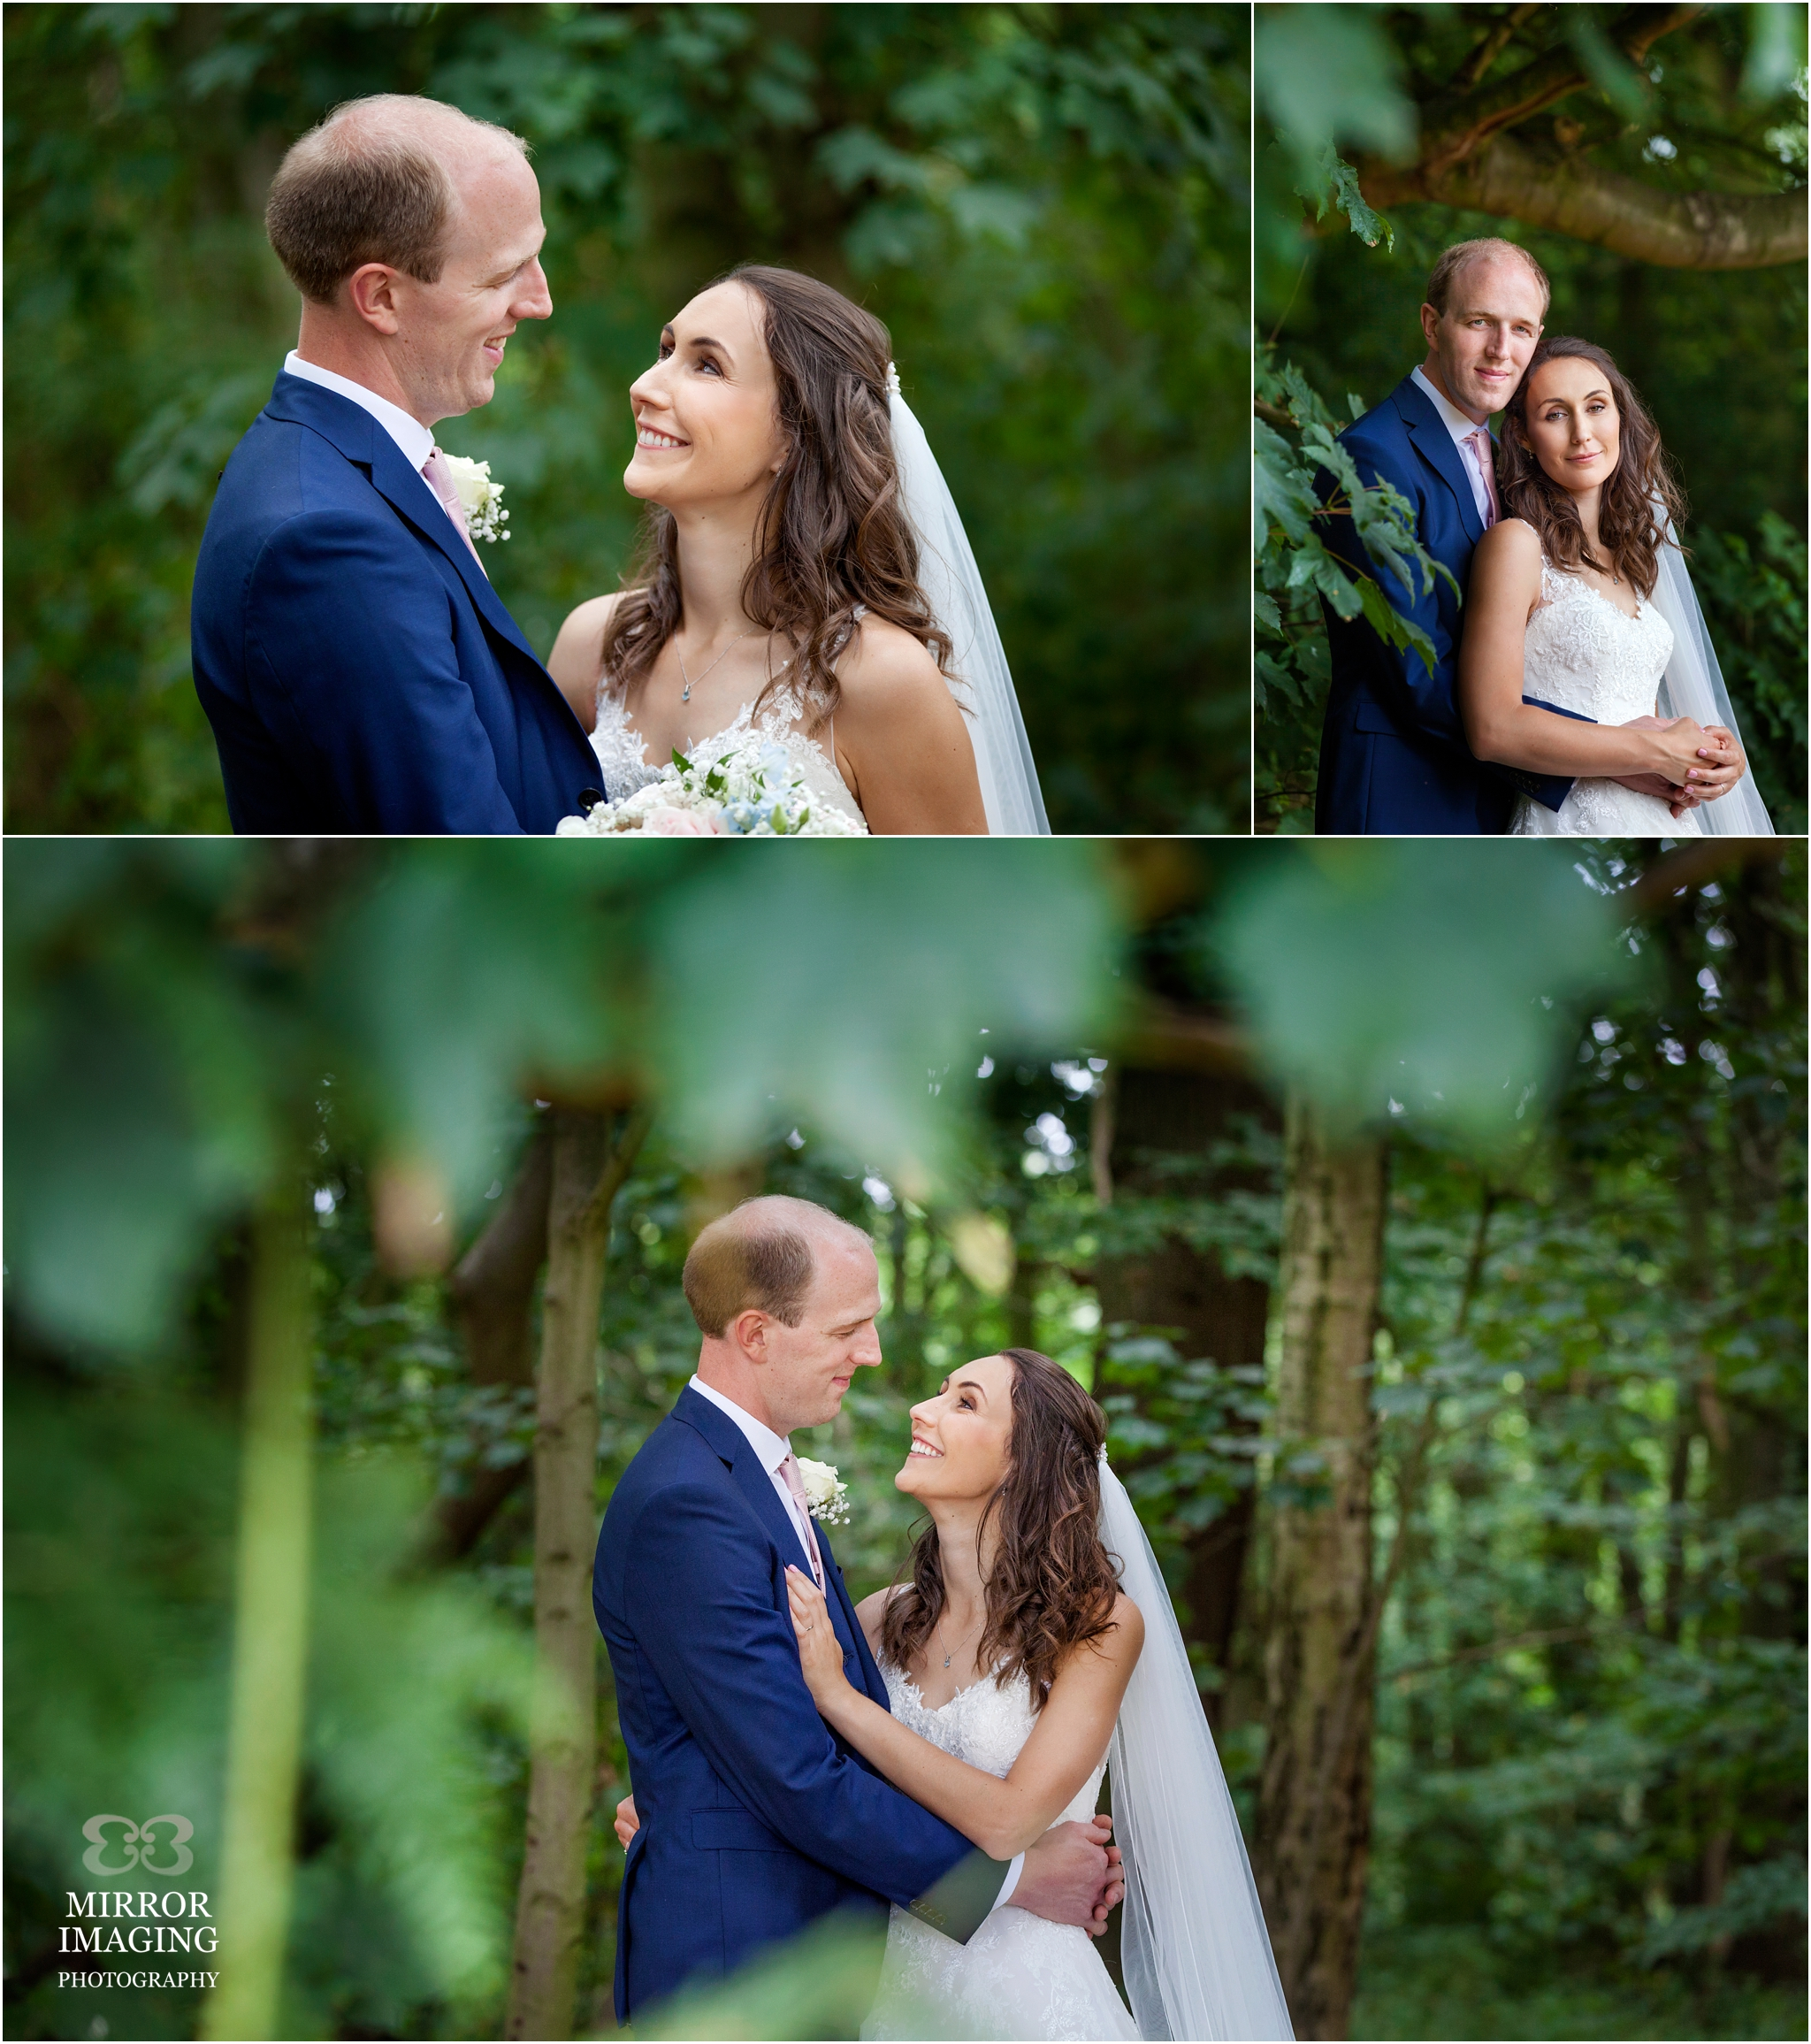 wedding_photographers_nottingham_0248.jpg